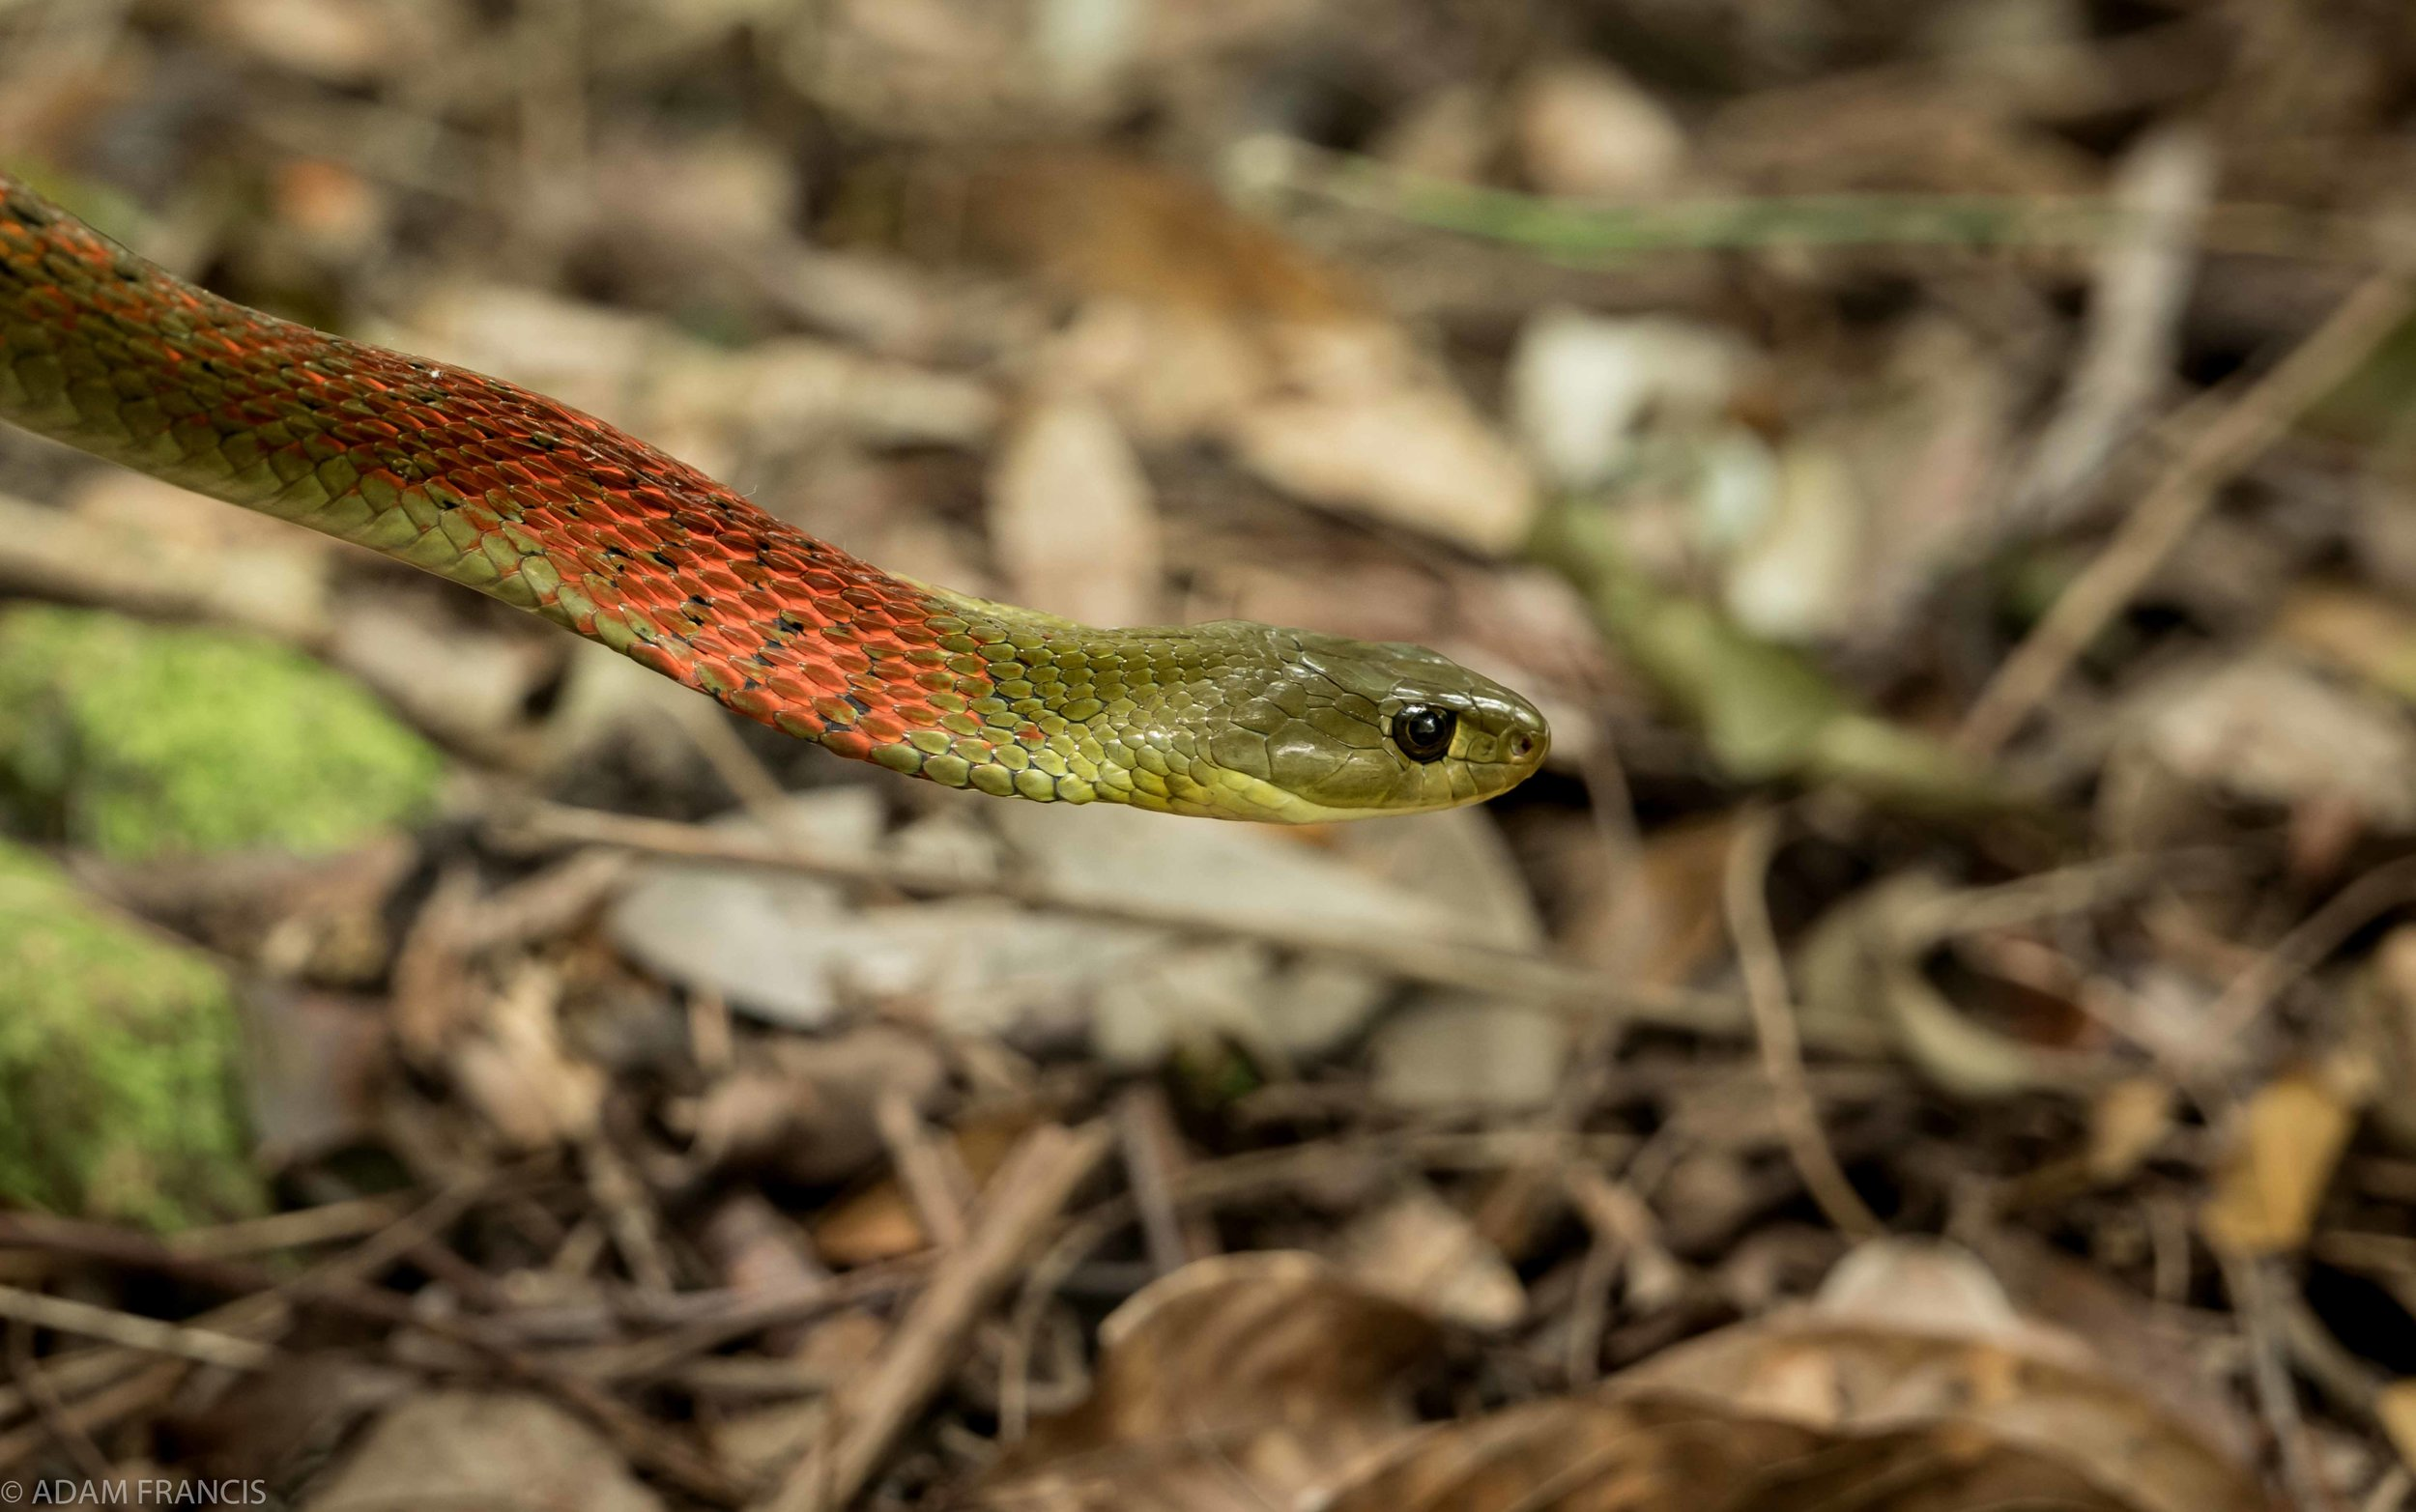 RED NECK KEELBACK